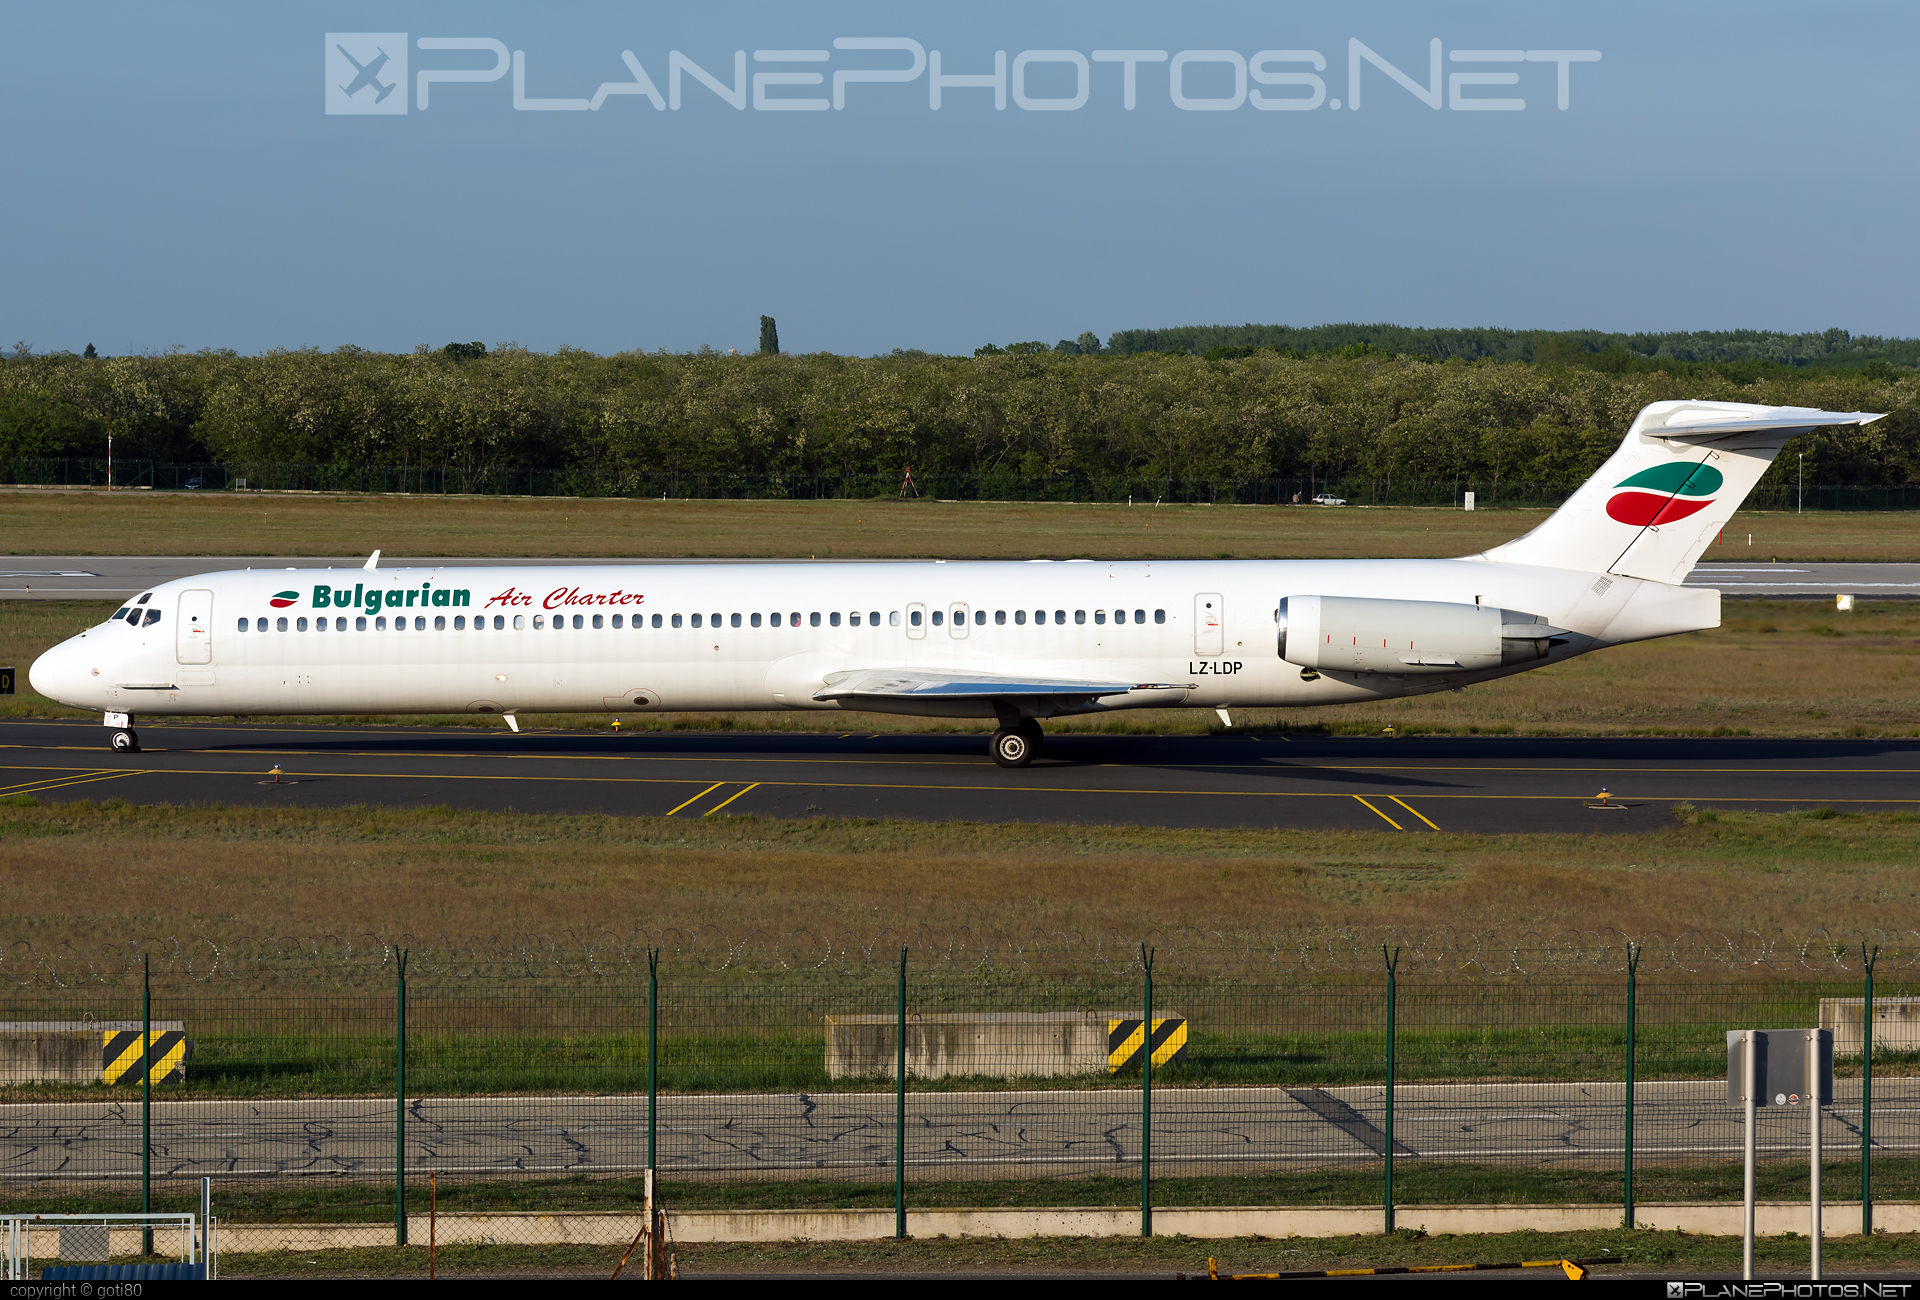 McDonnell Douglas MD-82 - LZ-LDP operated by Bulgarian Air Charter #bulgarianaircharter #mcdonnelldouglas #mcdonnelldouglas80 #mcdonnelldouglas82 #mcdonnelldouglasmd80 #mcdonnelldouglasmd82 #md80 #md82